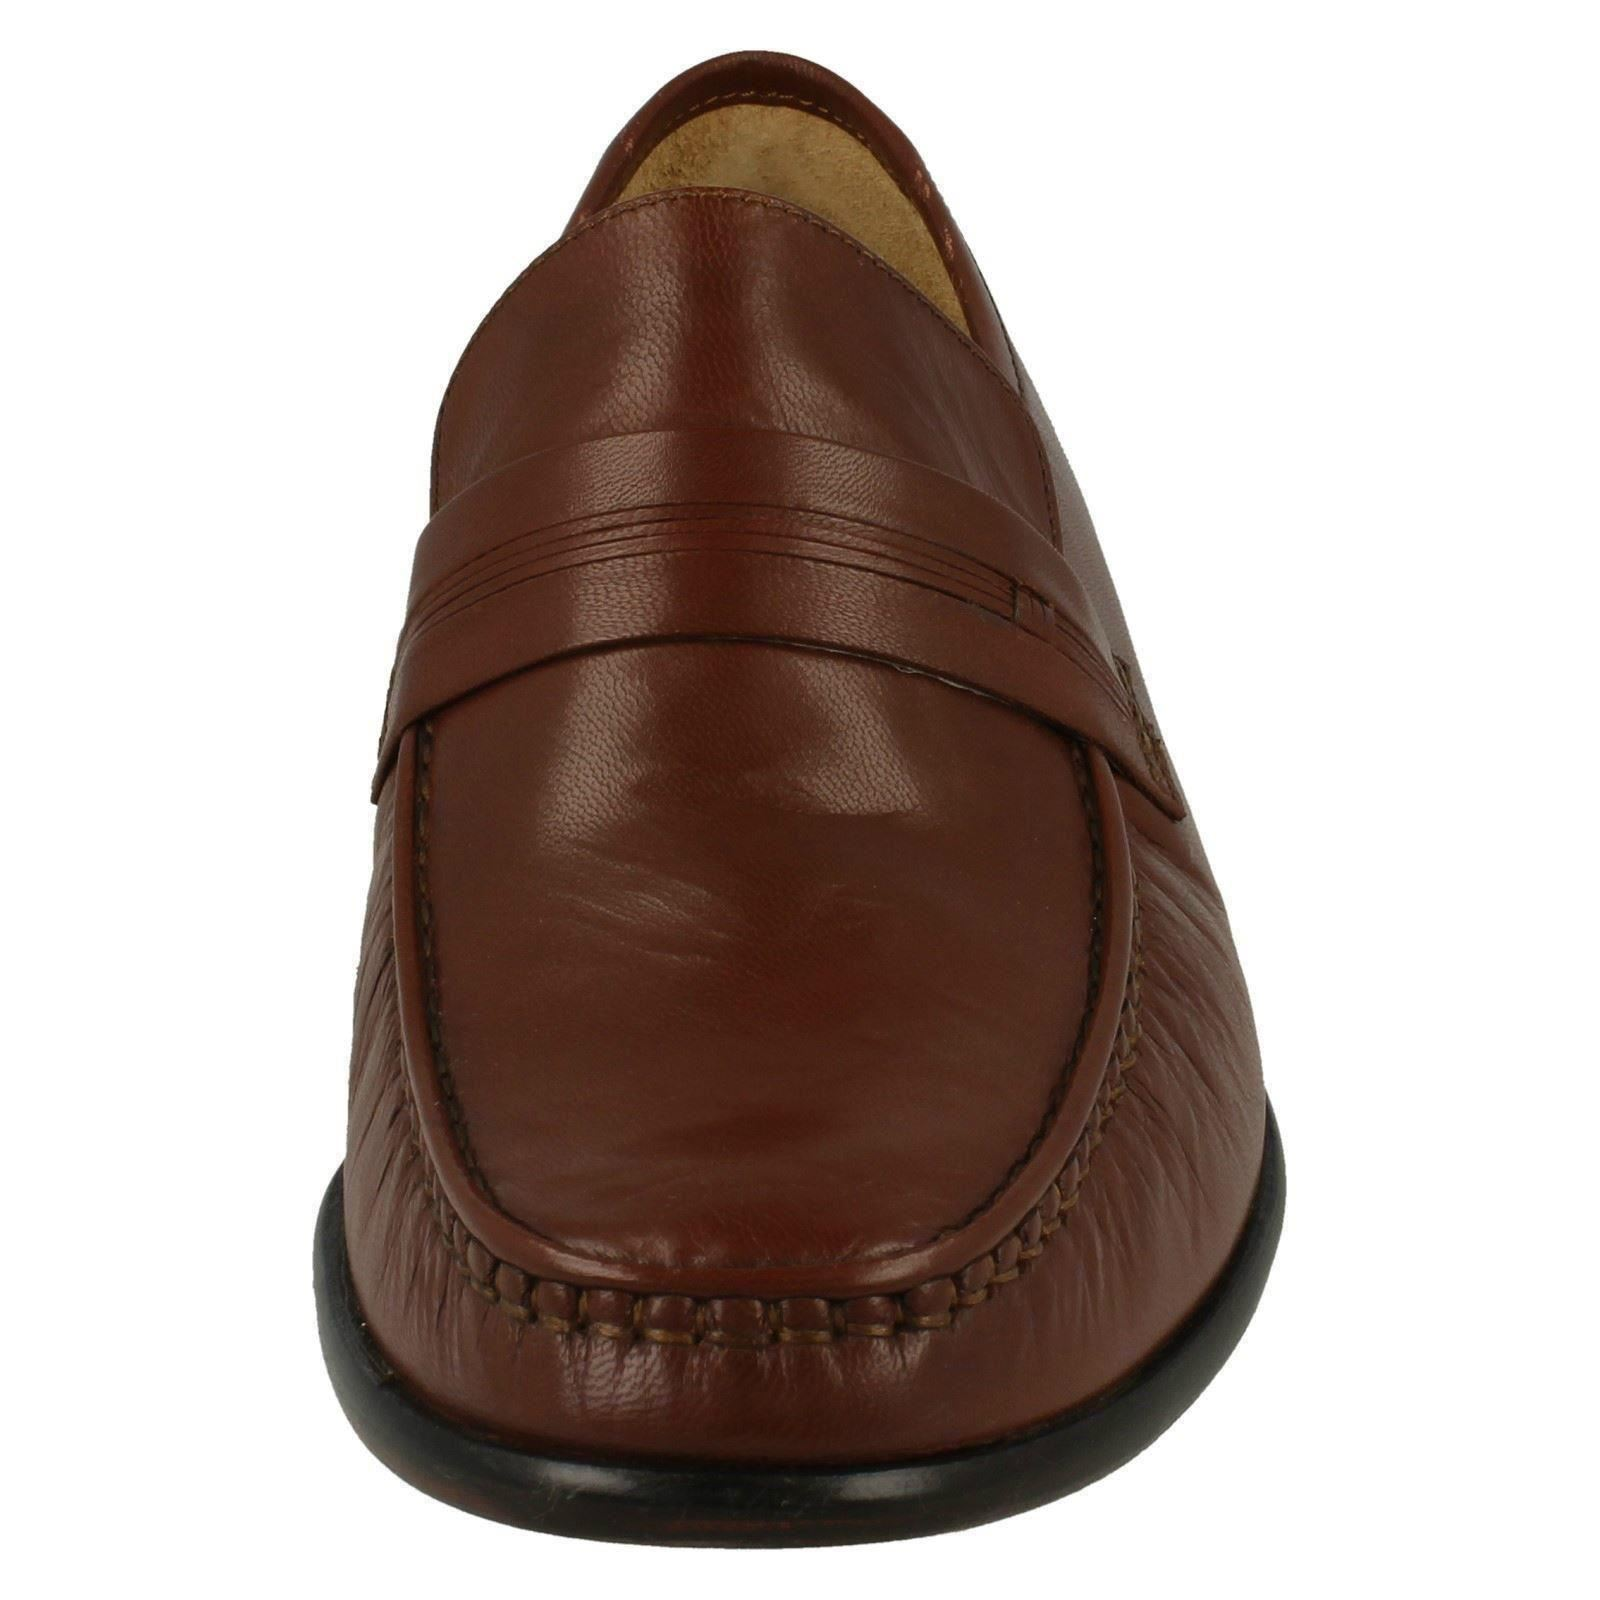 Uomo Thomas Blunt Formal Smart Style Moccasin Schuhes 'Clapham' The Style Smart  K 2e4c7d